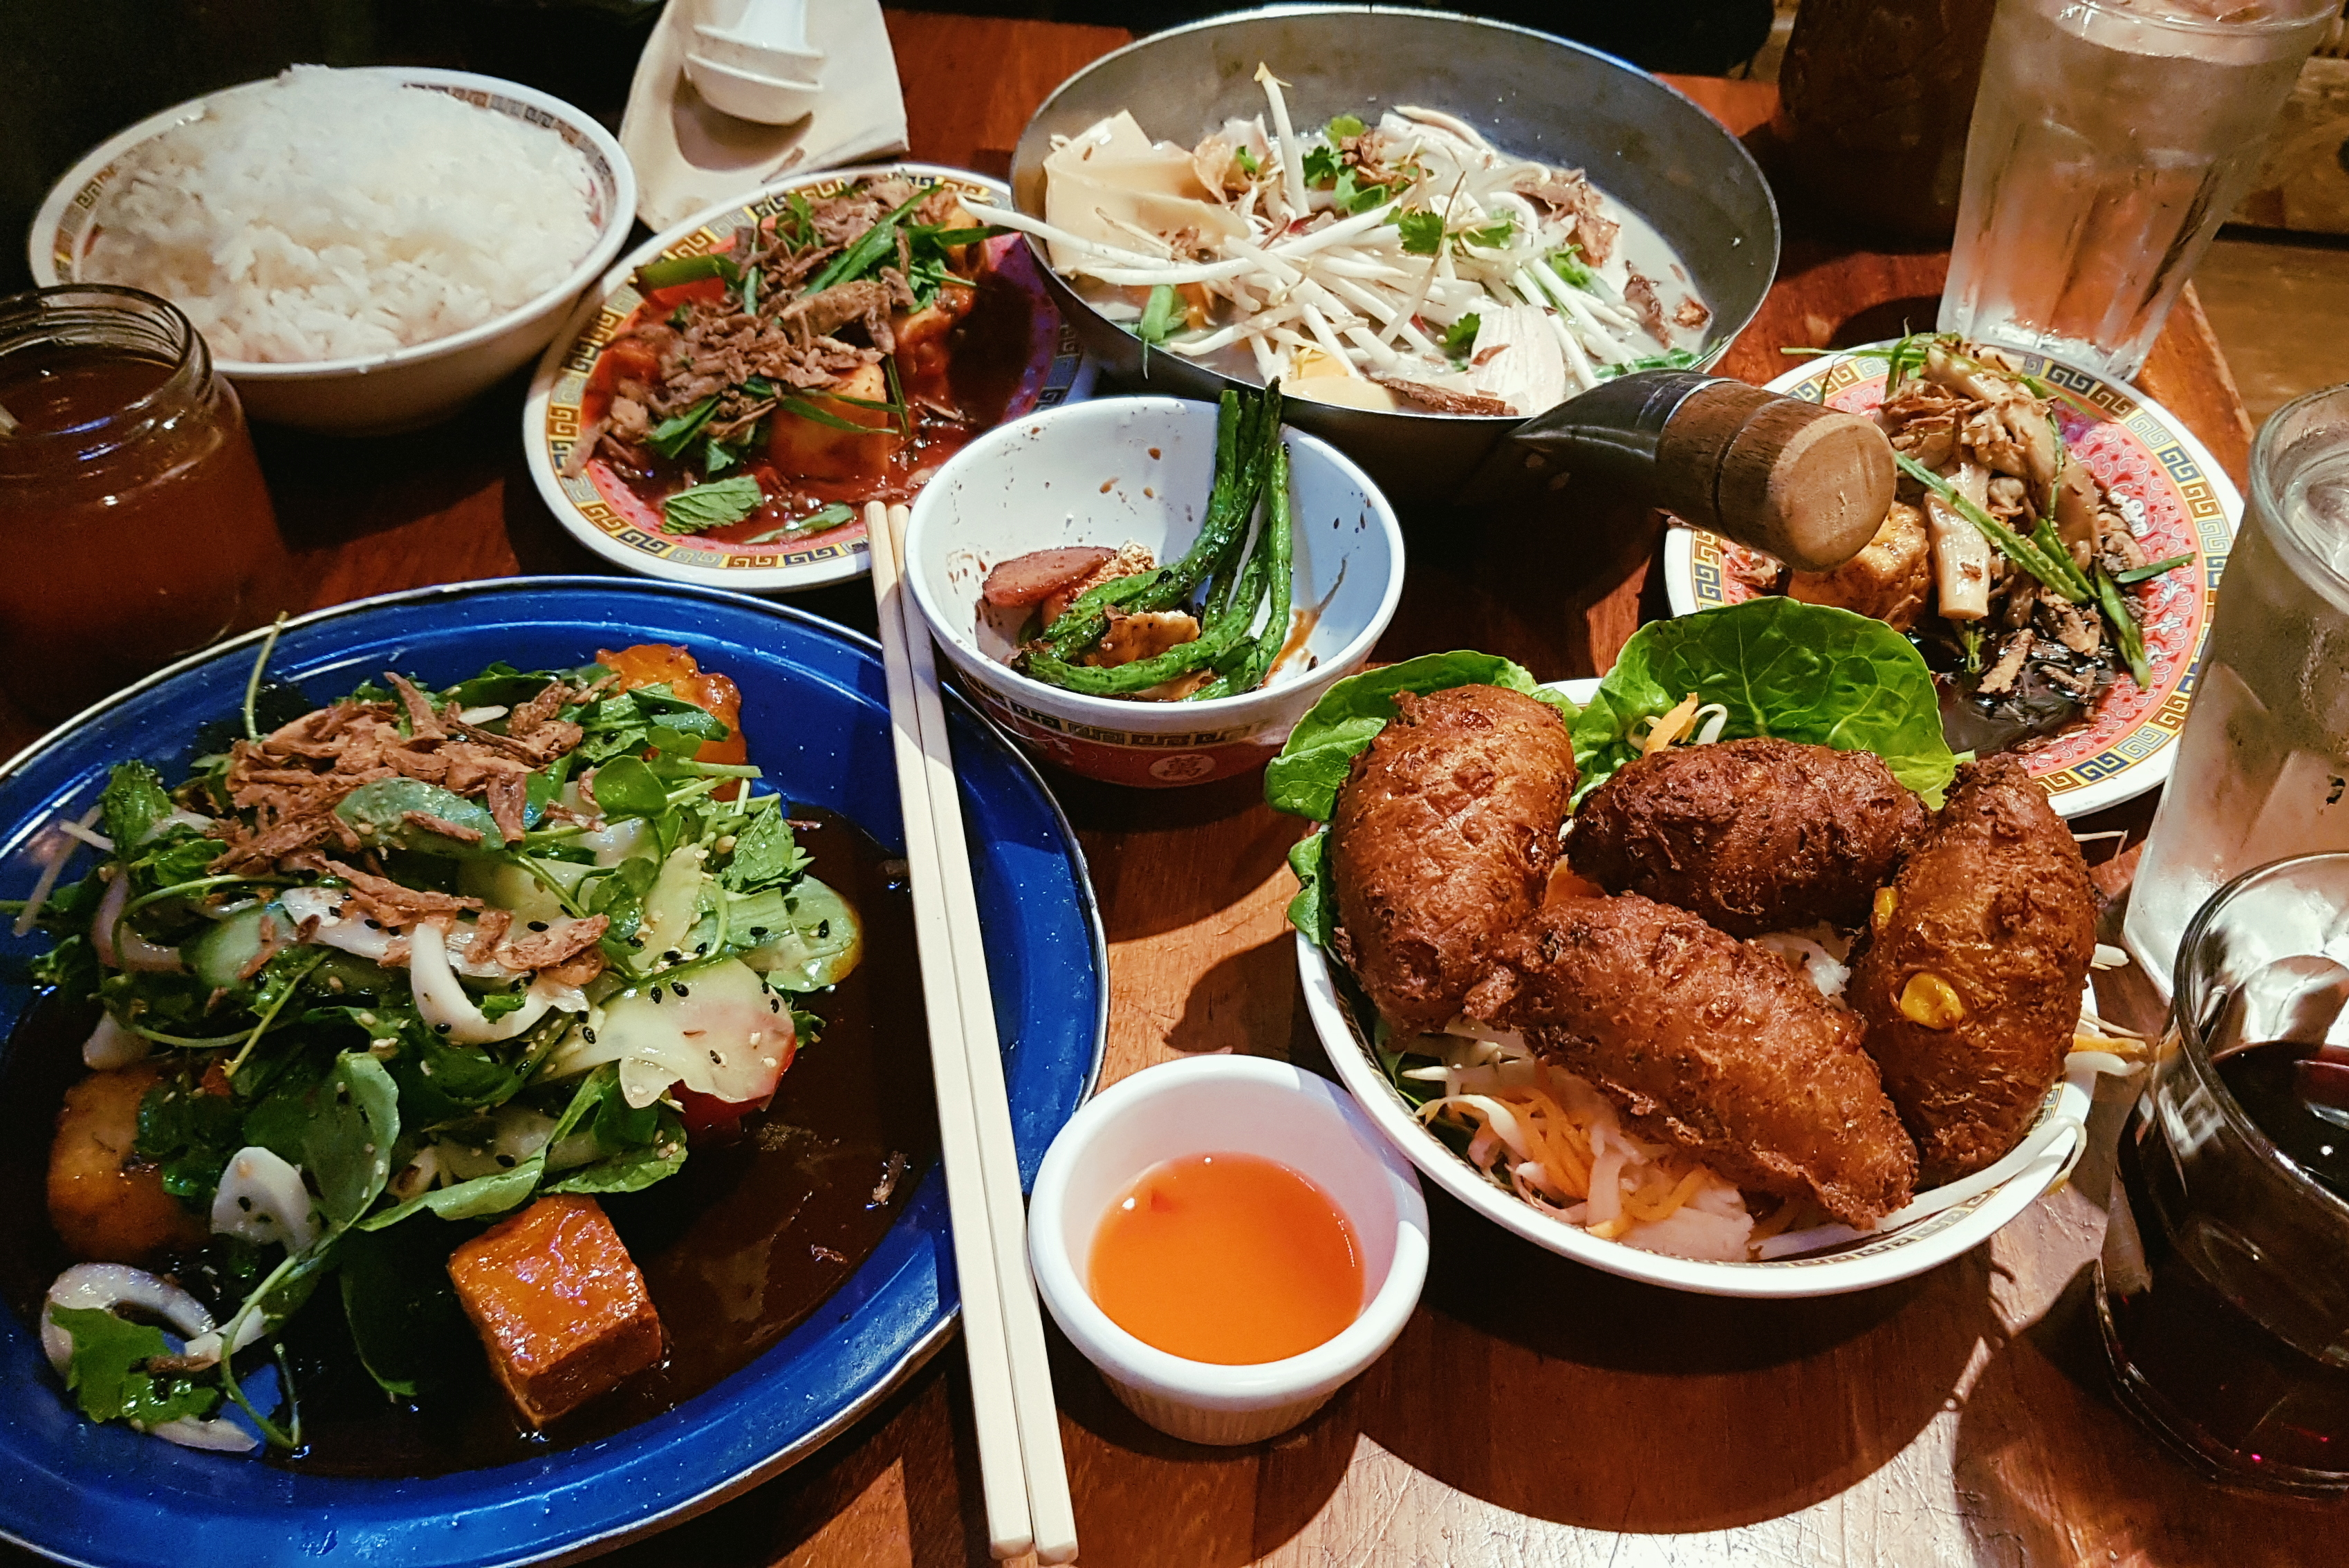 Hanoi Bike Shop Glasgow - Feed Me Vegan feast